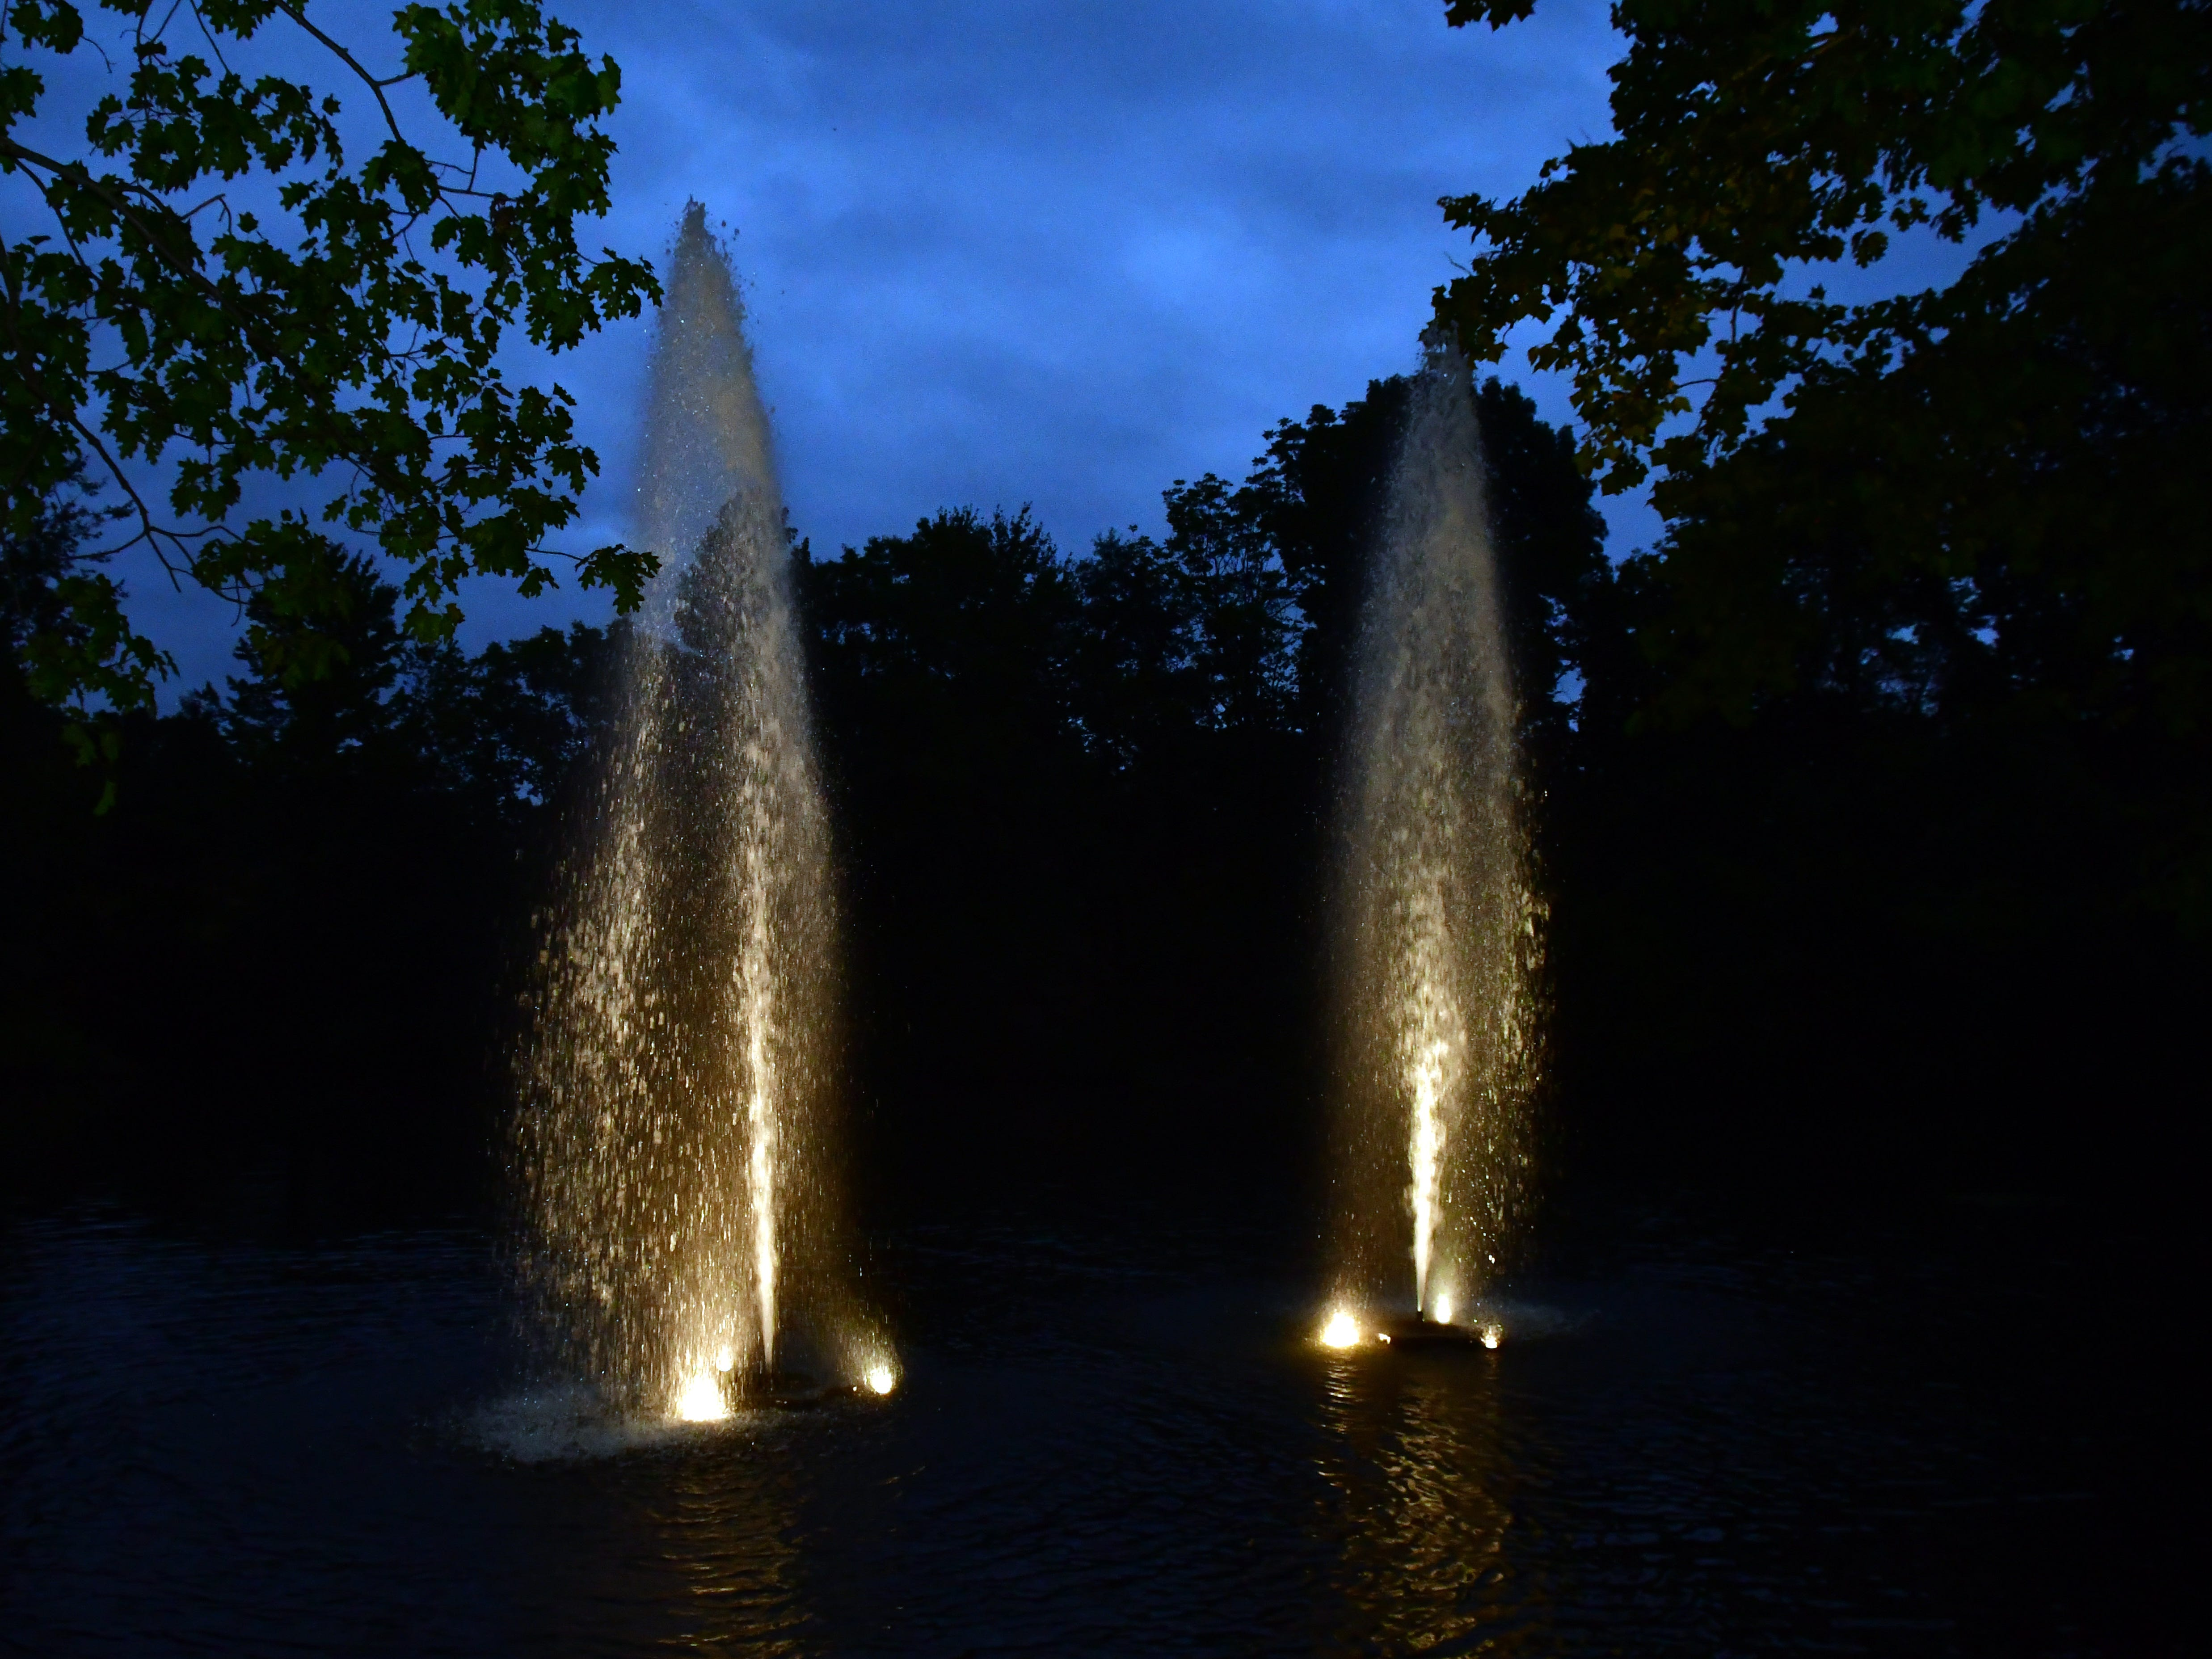 Bergen; Allendale NJ:  The two waterfalls represent the World Trade Center towers struck on Sept. 11, 2001. David Handschuh, speaks at the Crestwood Lake Memorial in Allendale on Tuesday September 11, 2018 about his experience as a photographer covering the World Trade Center terrorist attack in New York in 2001.  After taking photos that were published in the newspapers David sustained injuries (broken legs) and had to be rescued.